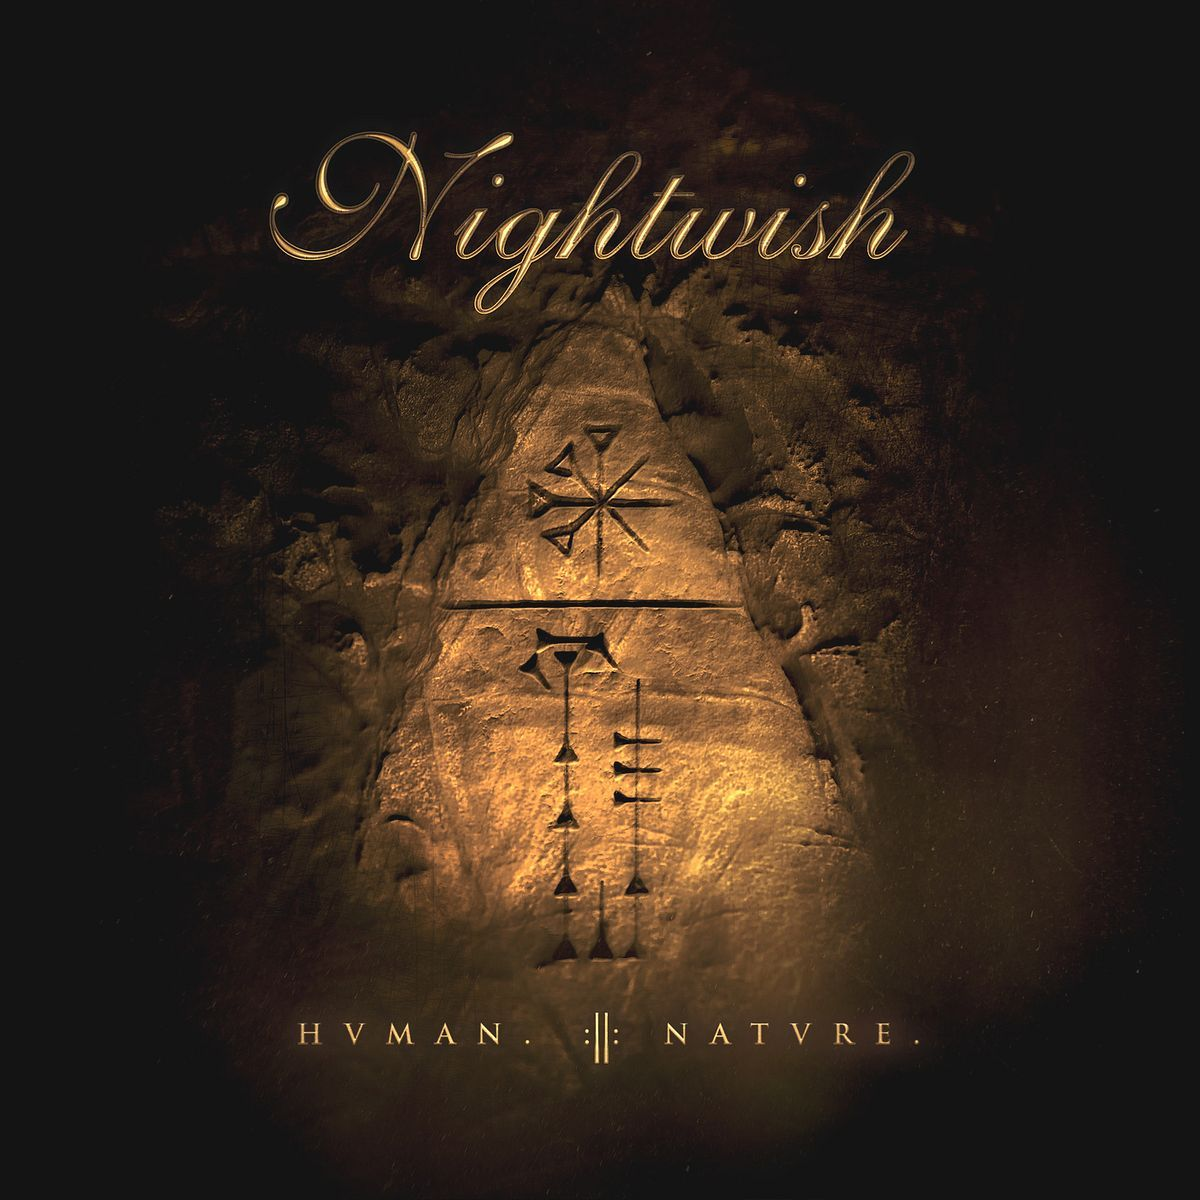 New Album from Nightwish - meme